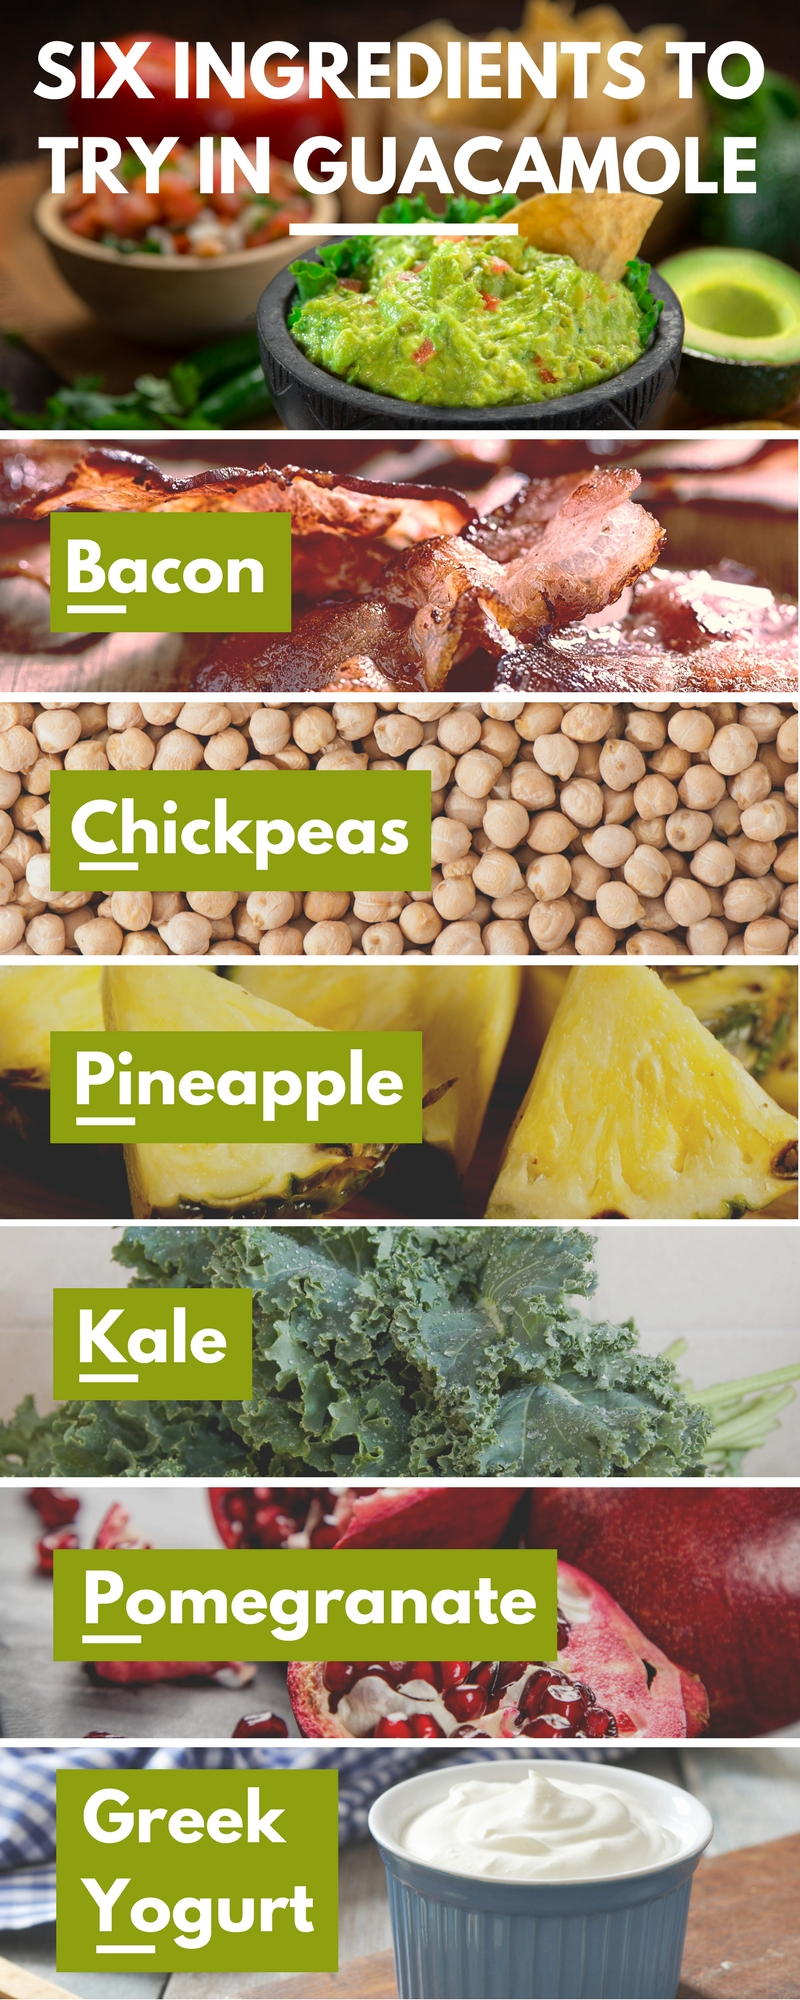 Image of the Six Ingredients to try in Guacamole infographic!